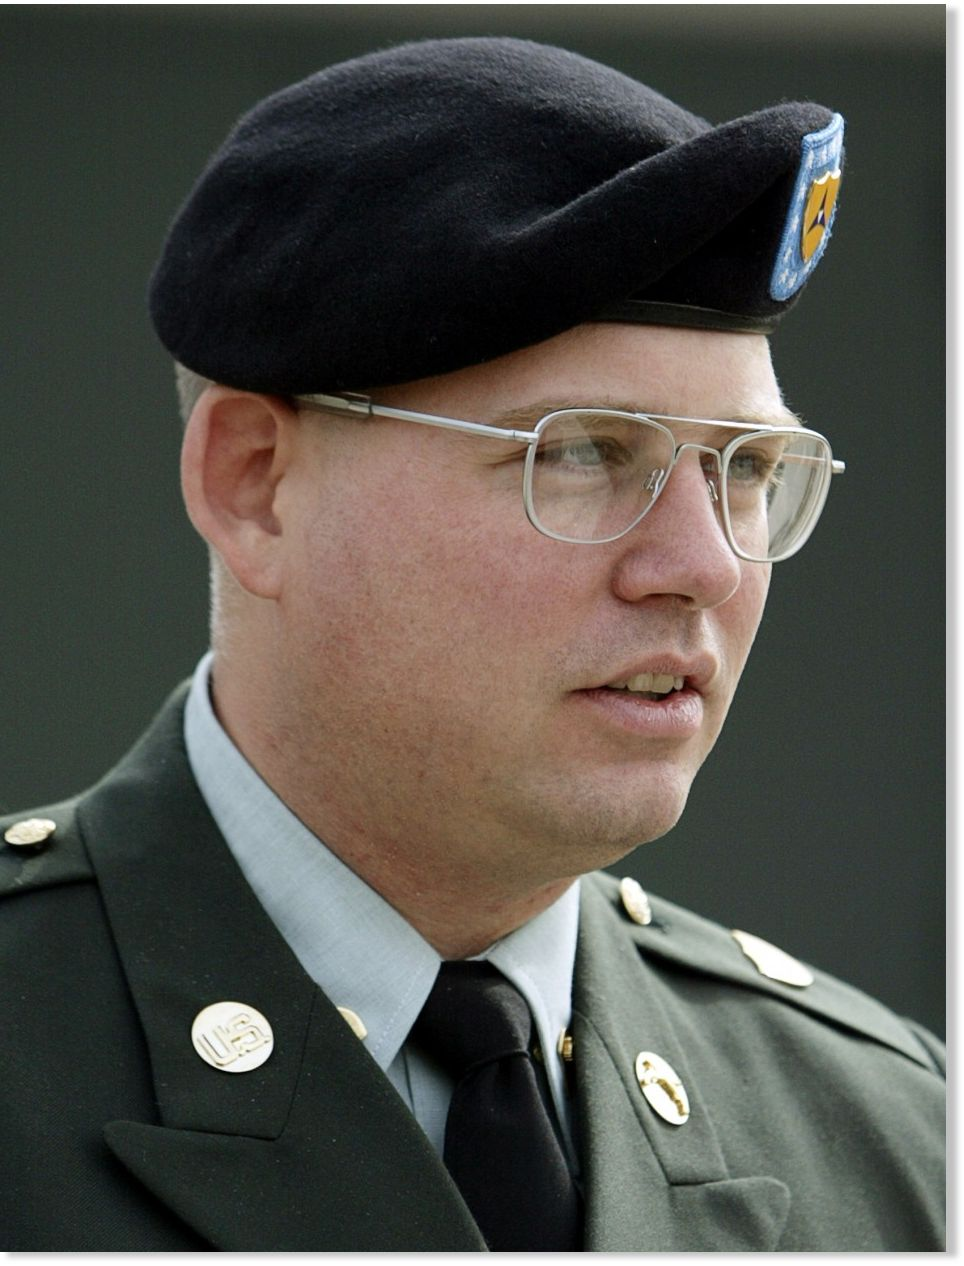 Abu Ghraib guard convicted of prisoner abuse released from